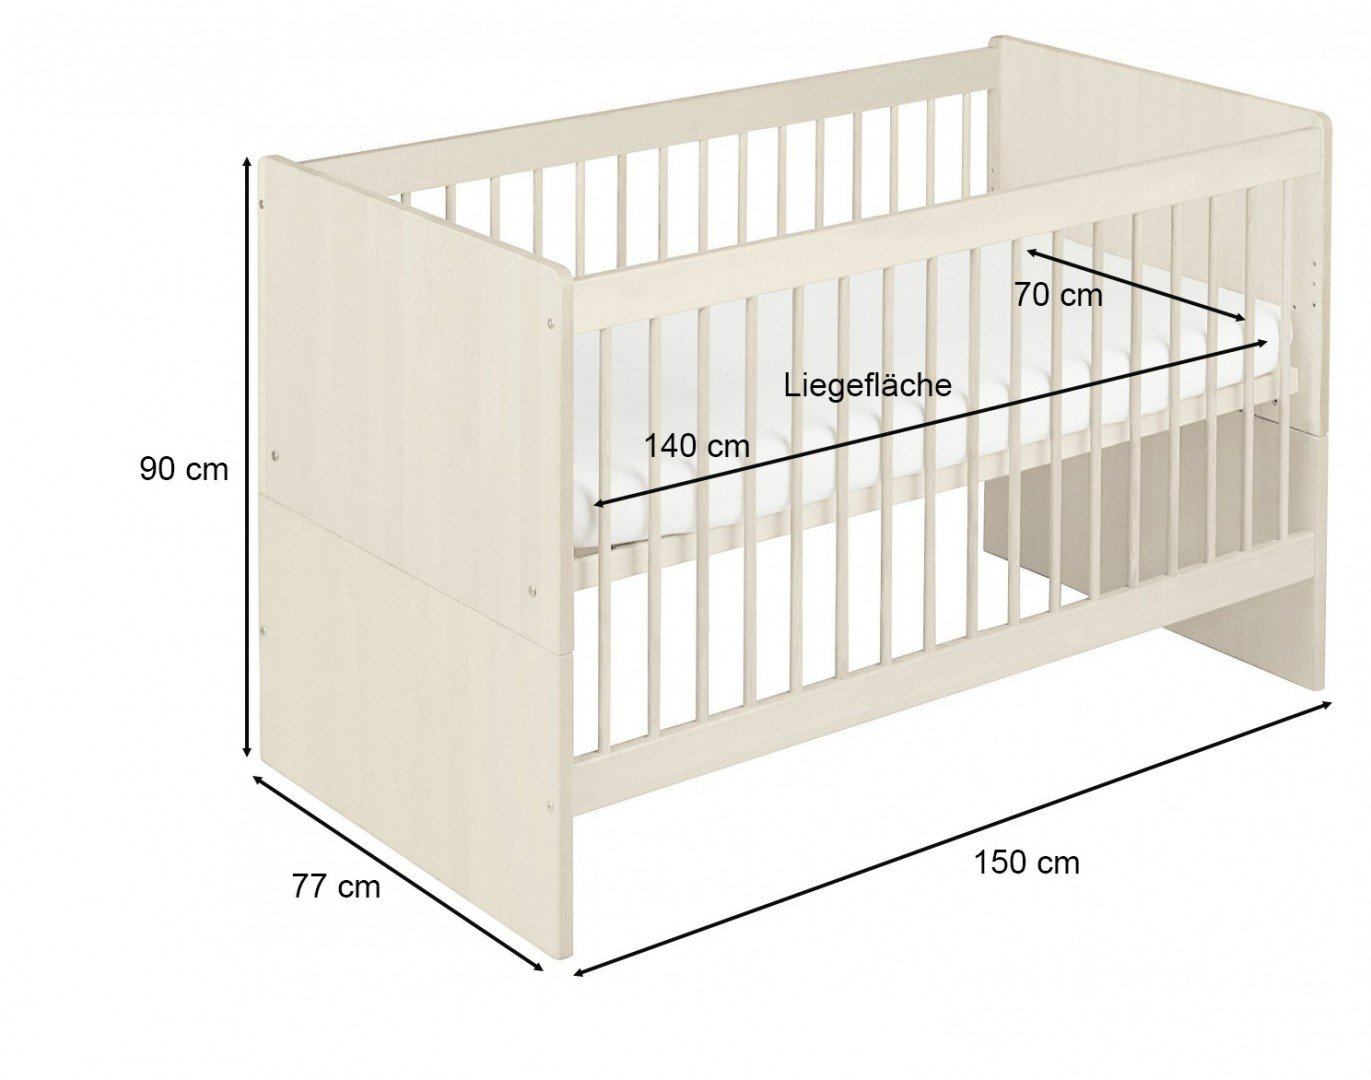 BioKinder 22600 Lina babybed cot 70x140 cm. Biological massive wood Bio-Kinder Babybed cot Lina Sustainable solid wood. Biological finish. Individually handcrafted by professional carpenters Surface W 70 cm, L 140 cm. Outward measurement L 150 cm, W 77 cm, H 90 cm. 4